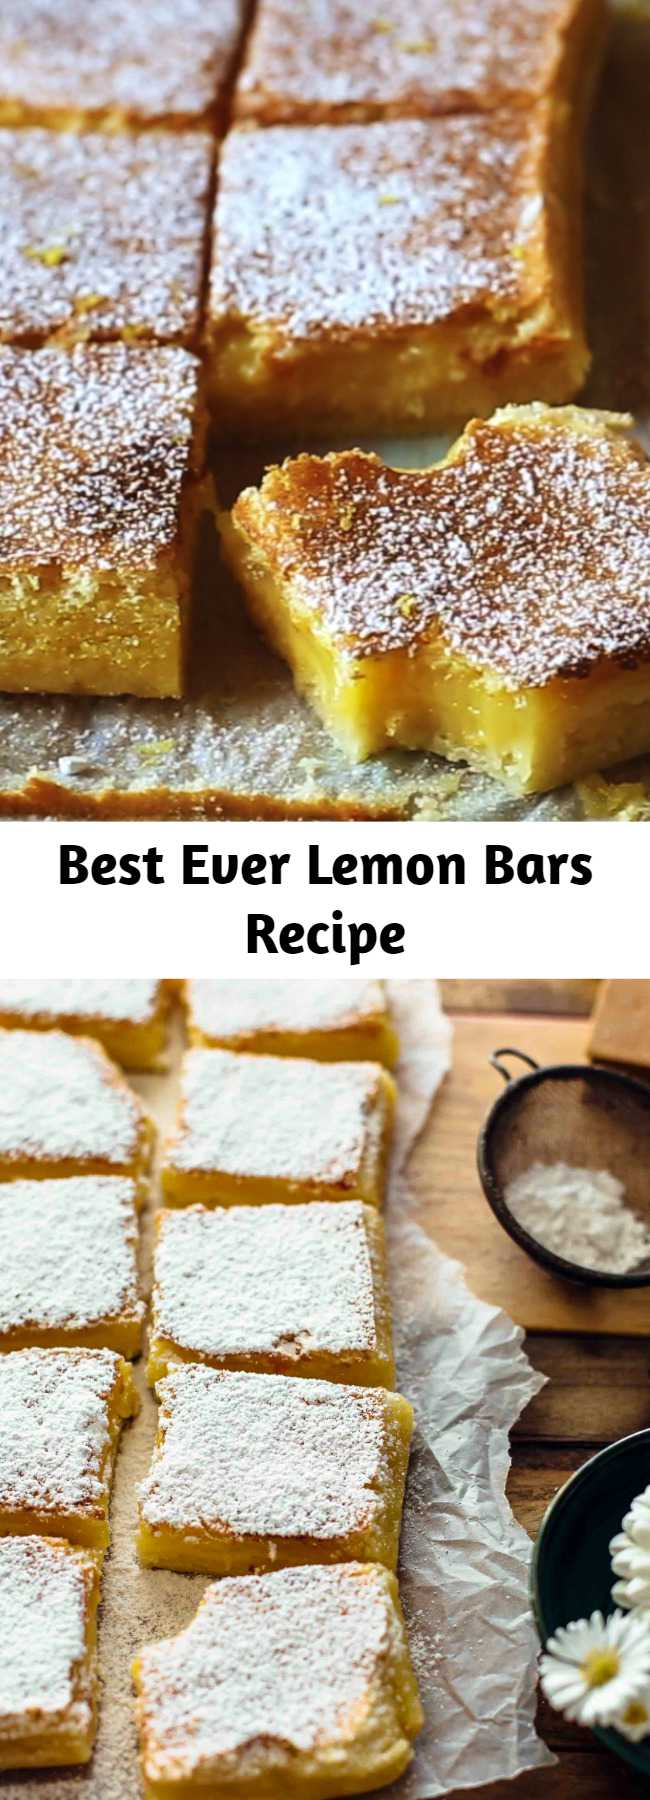 These Lemon Bars are sour and sweet and very easy to make. Buttery shortbread crust meets tangy lemon curd filling. You won't be able to stop eating these. Just 7 ingredients! #lemonbars #lemon #sweets #desserts